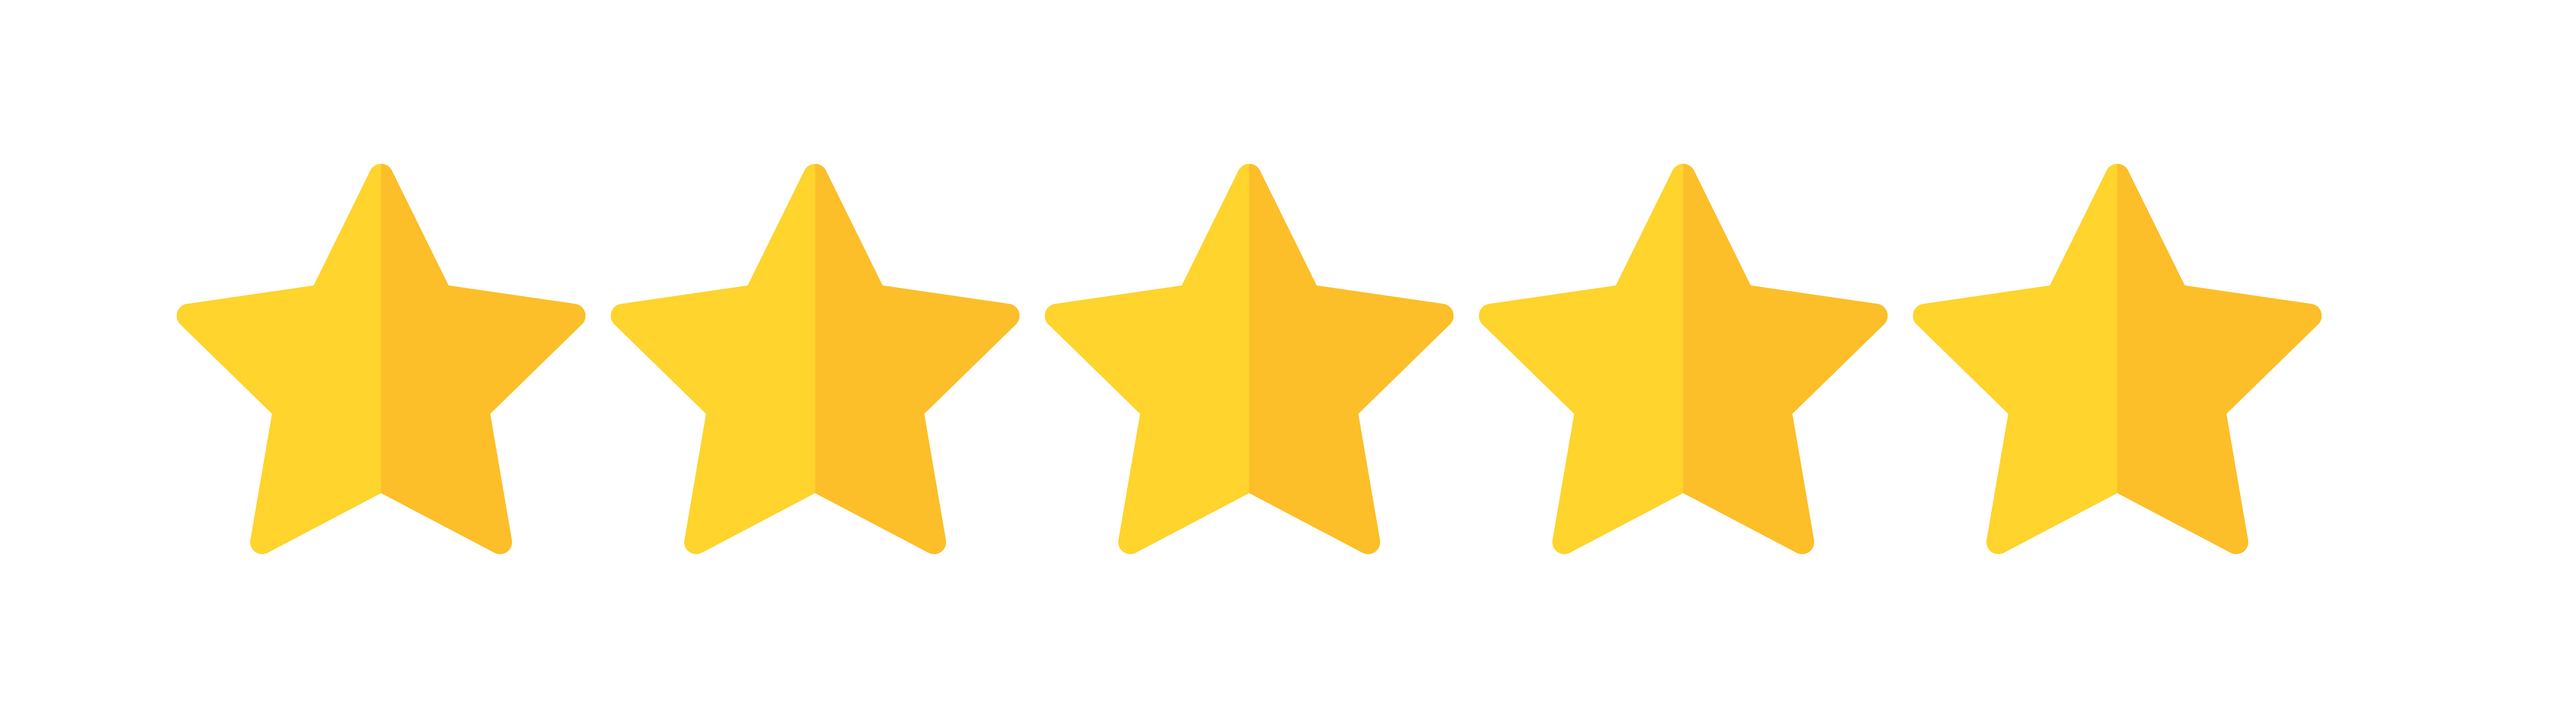 5 star-01.png